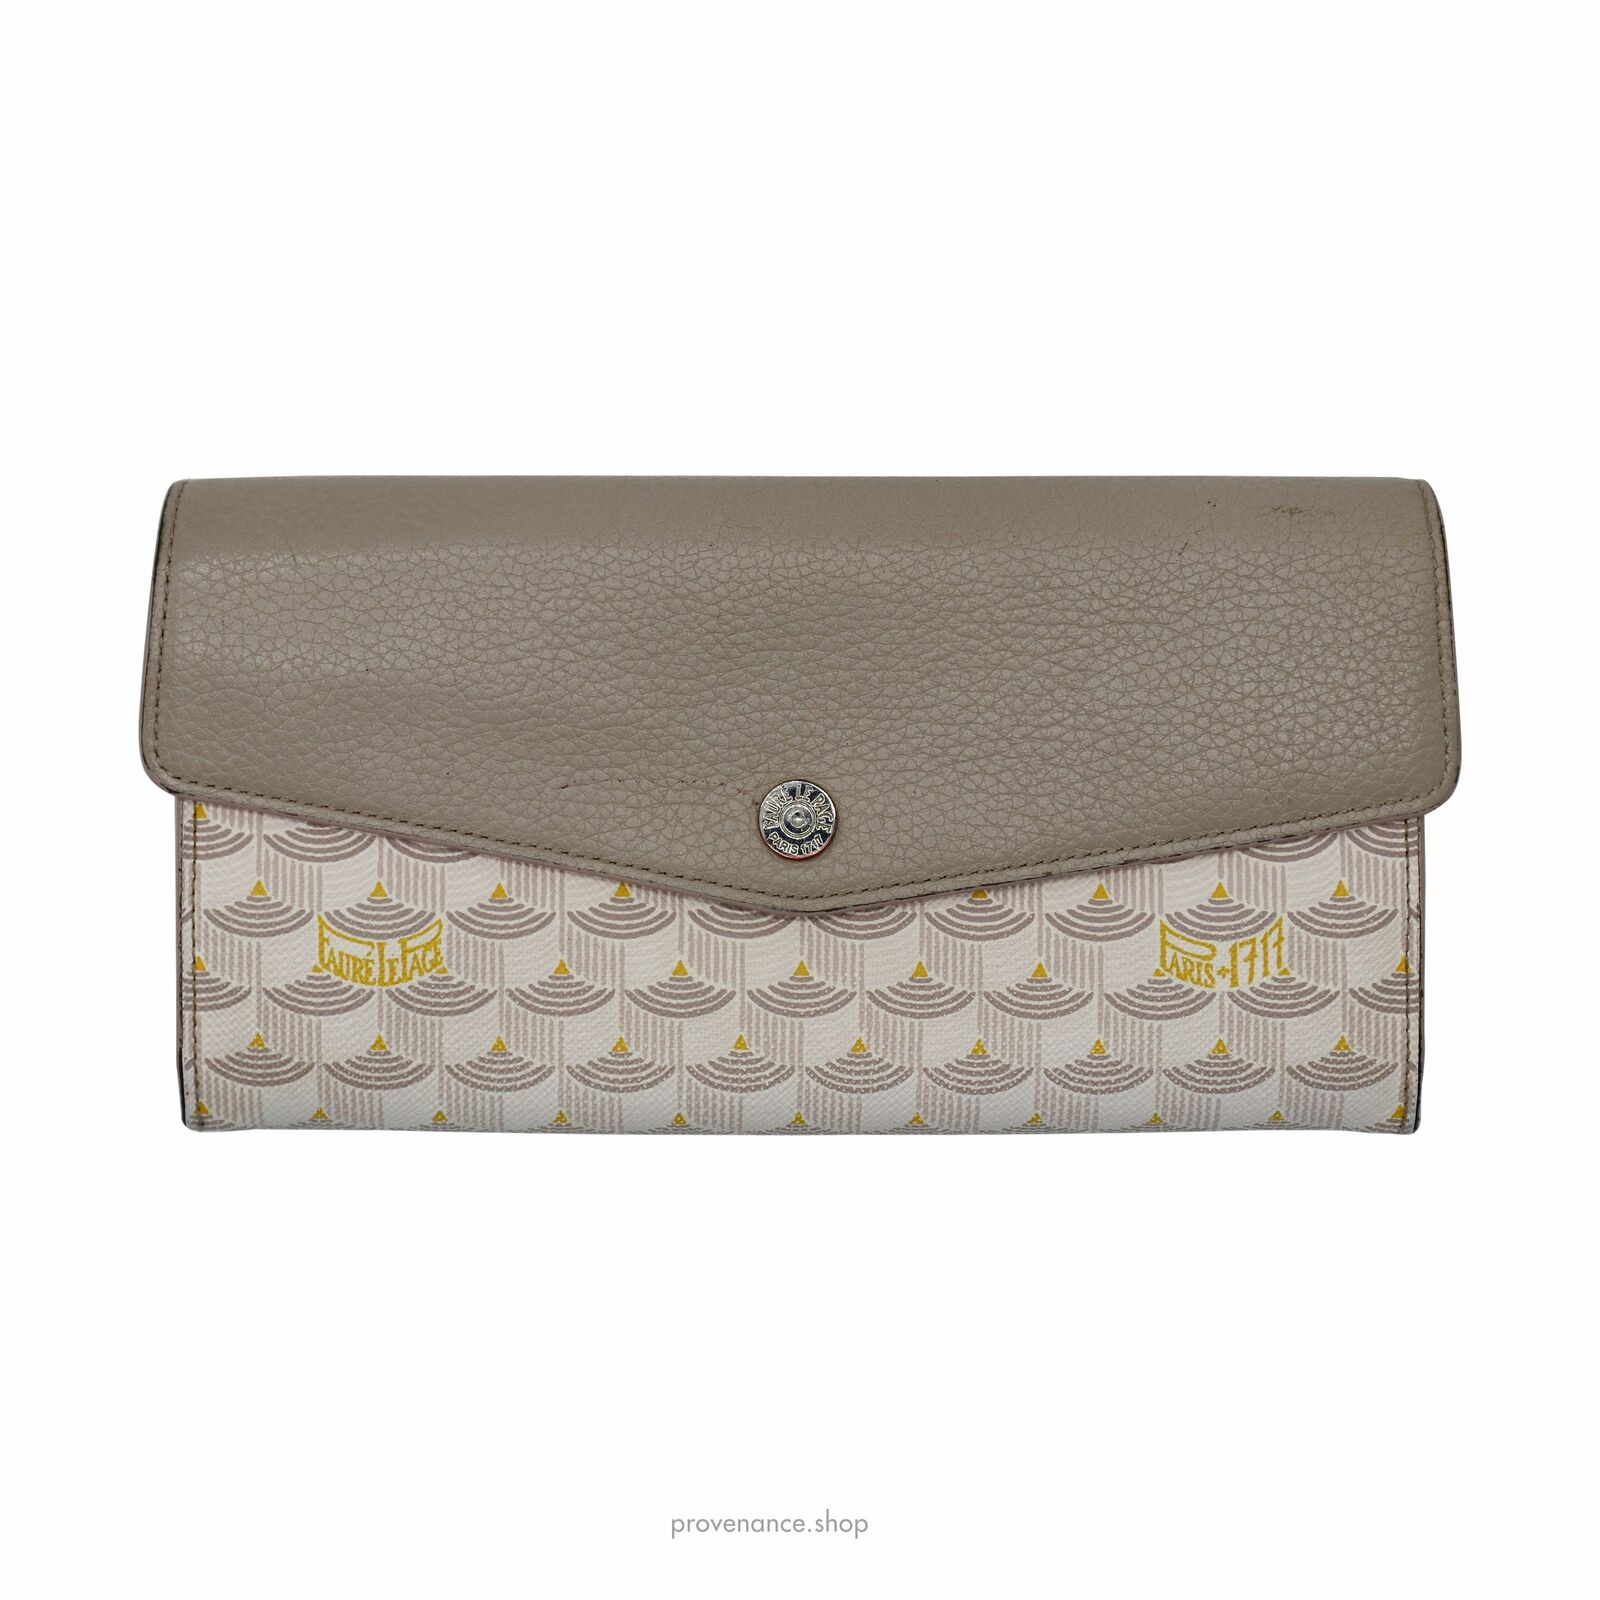 Faure Le Page Rabat Long Wallet - Hot Sand Scale & Sand Leather